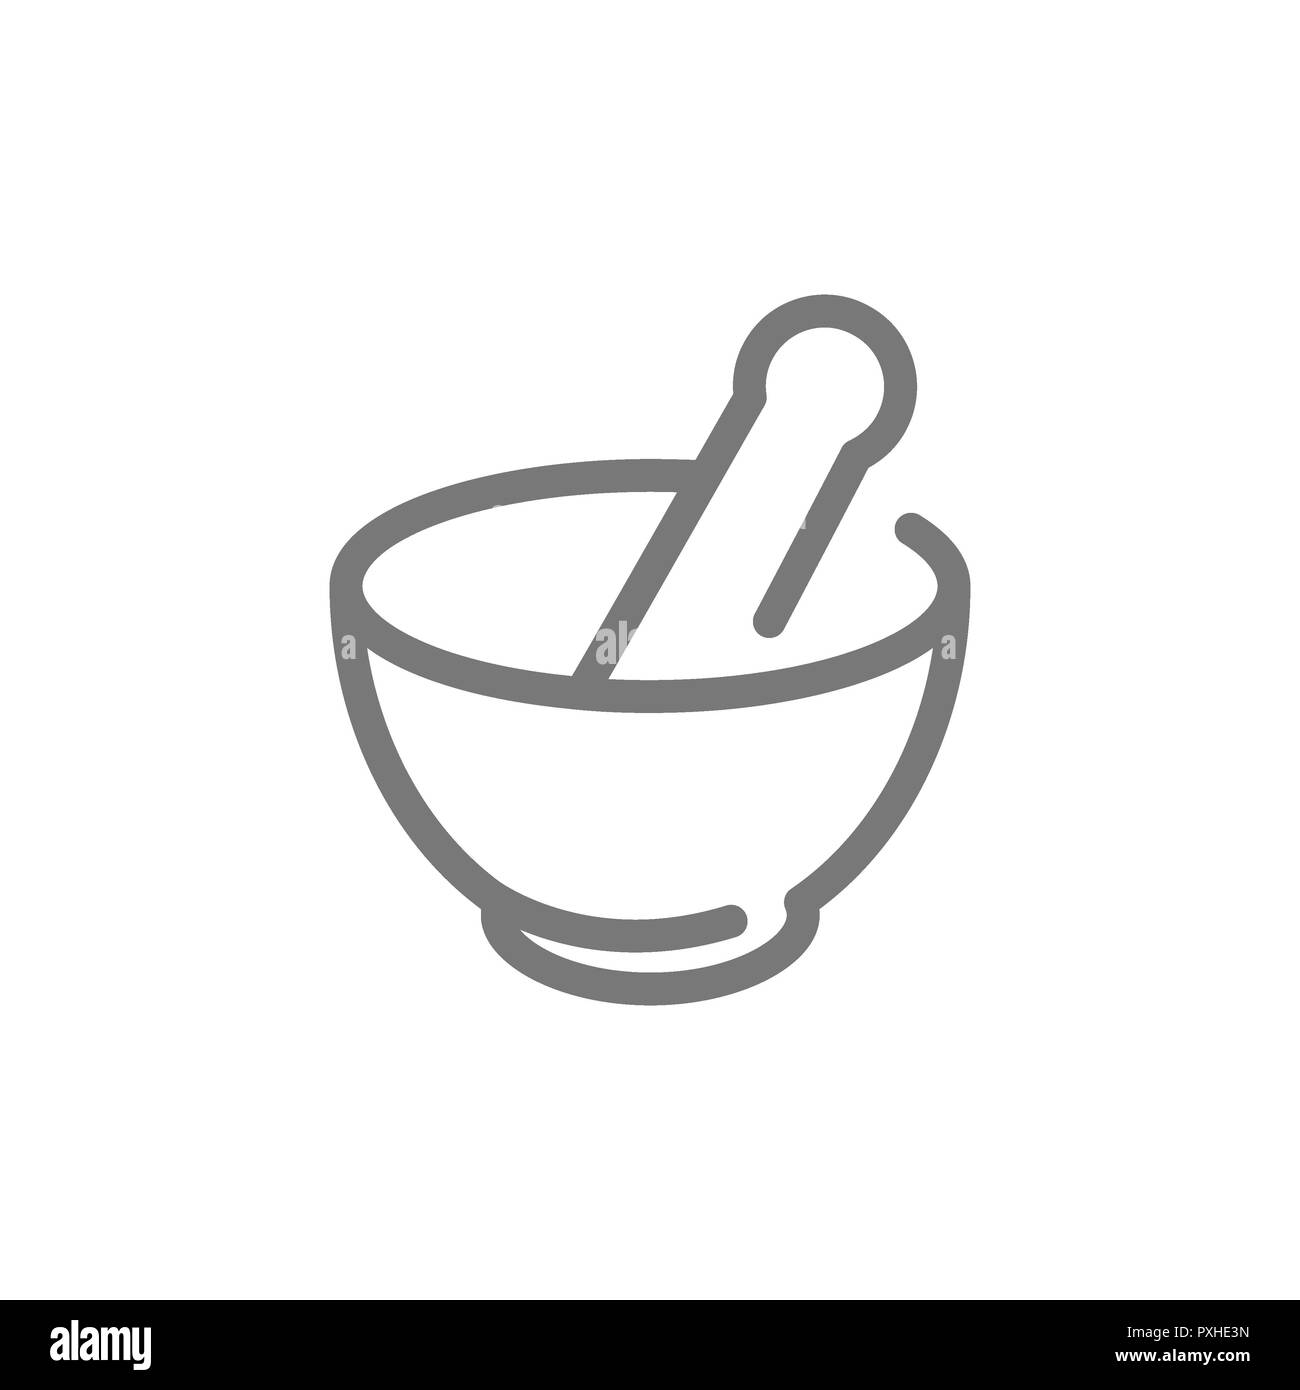 Simple chemical vessel, mortar, pestle, pistil, pounder line icon. Symbol and sign illustration design. Isolated on white background Stock Photo